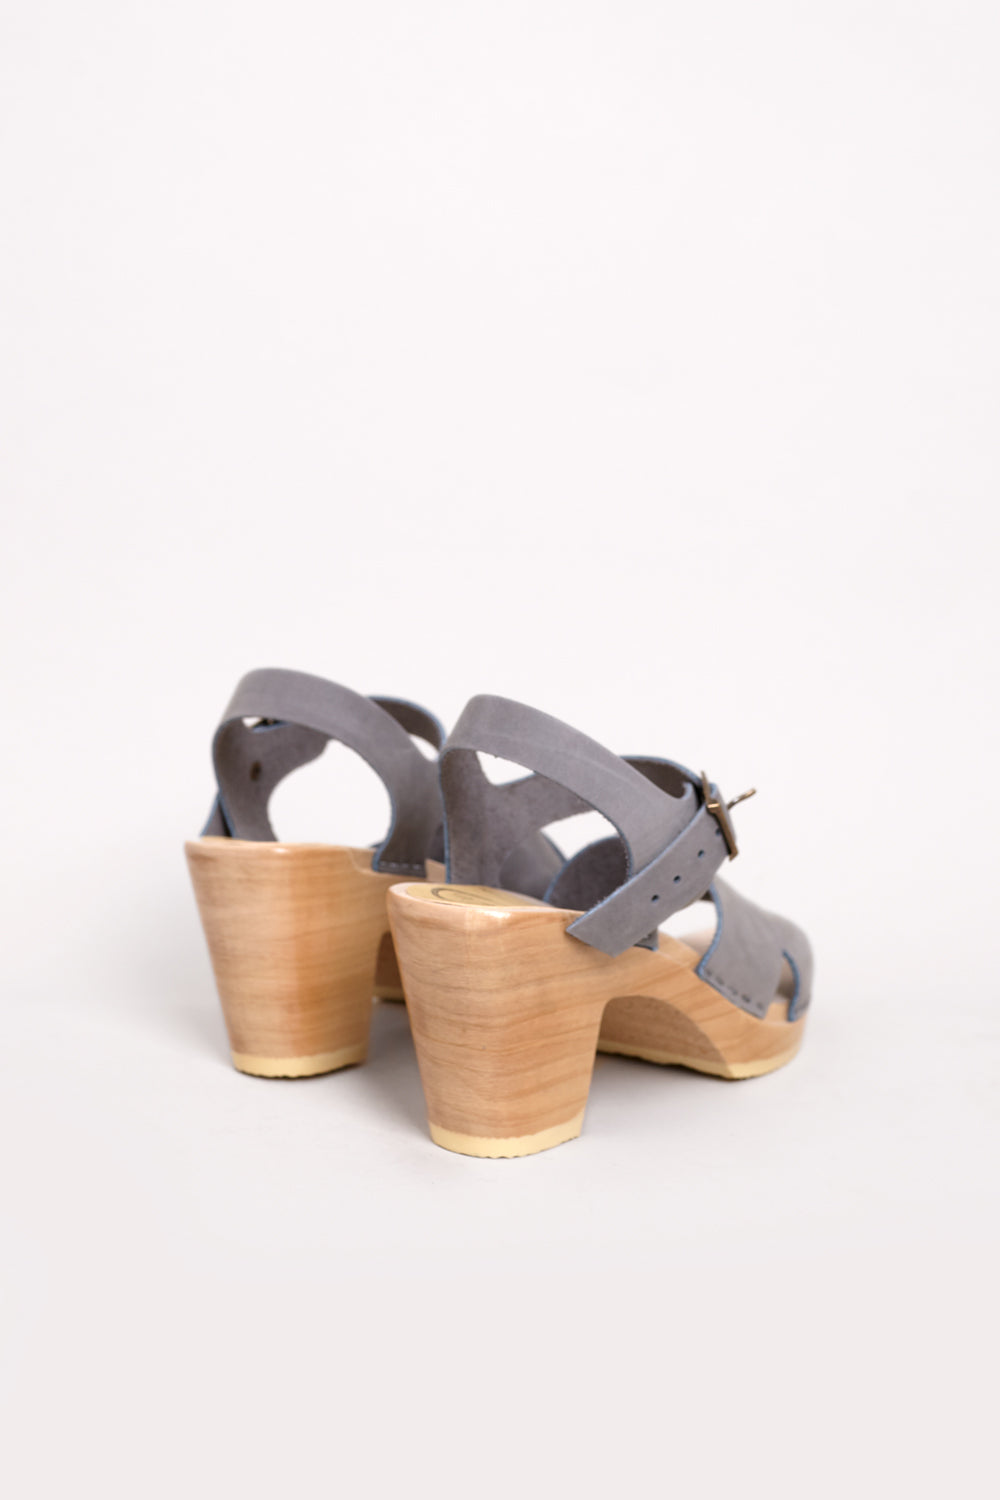 No.6 Coco Cross Sandal in Alaska on High Heel - Vert & Vogue